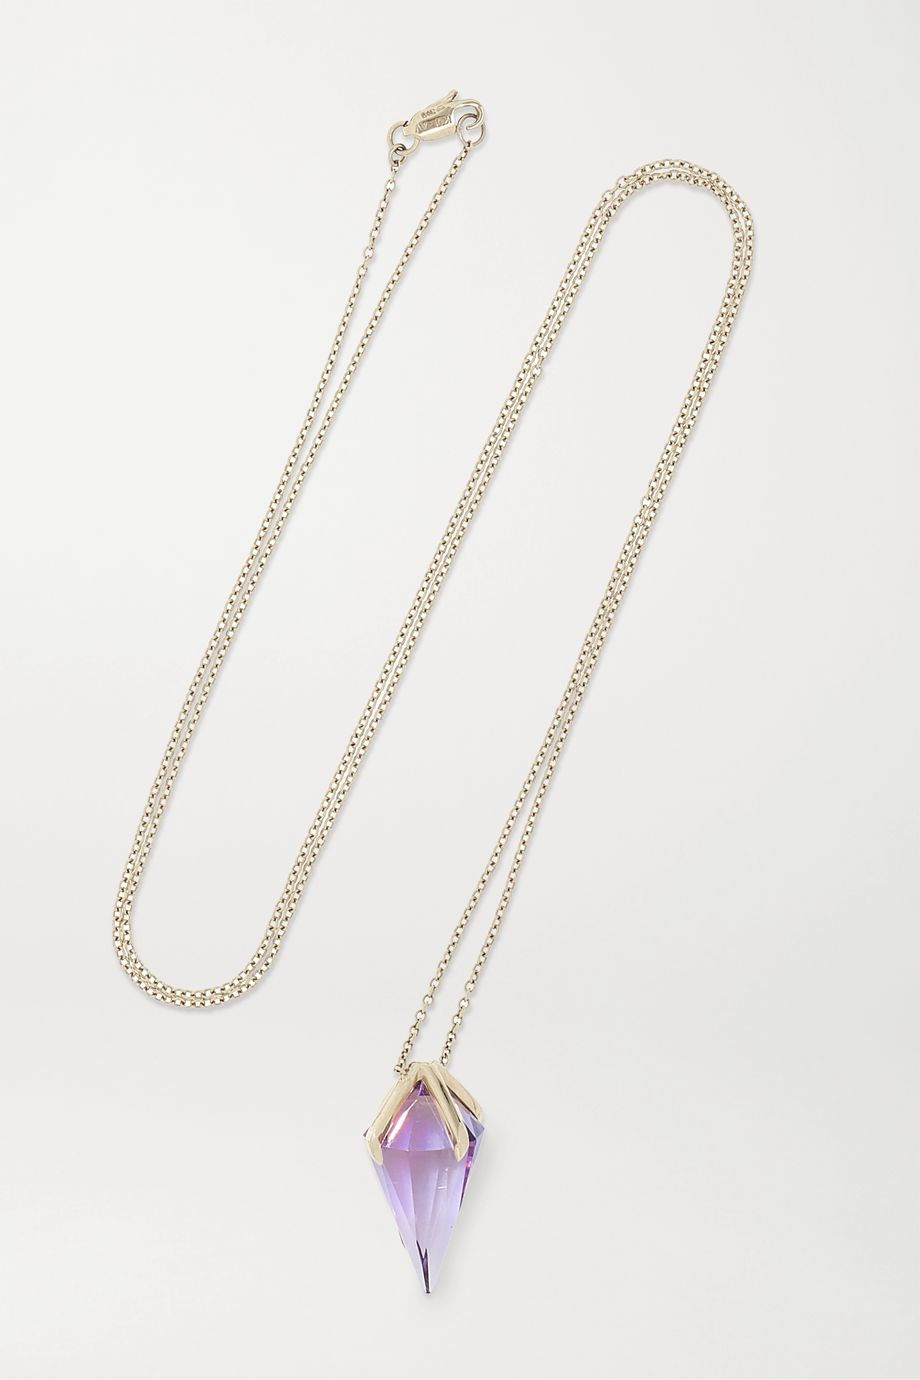 Ara Vartanian 18-karat white gold amethyst necklace